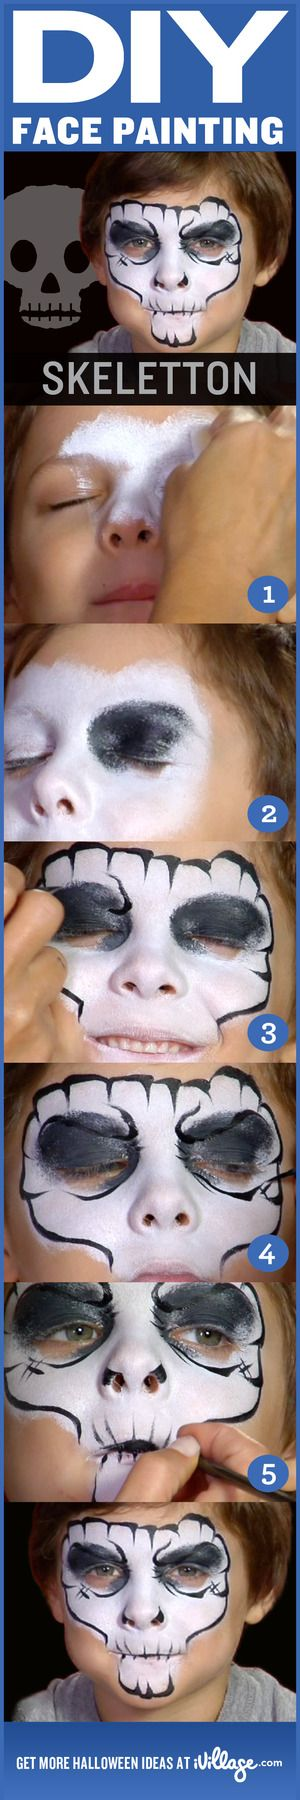 How to do skeleton face painting for kids. #halloweencostumes #diy